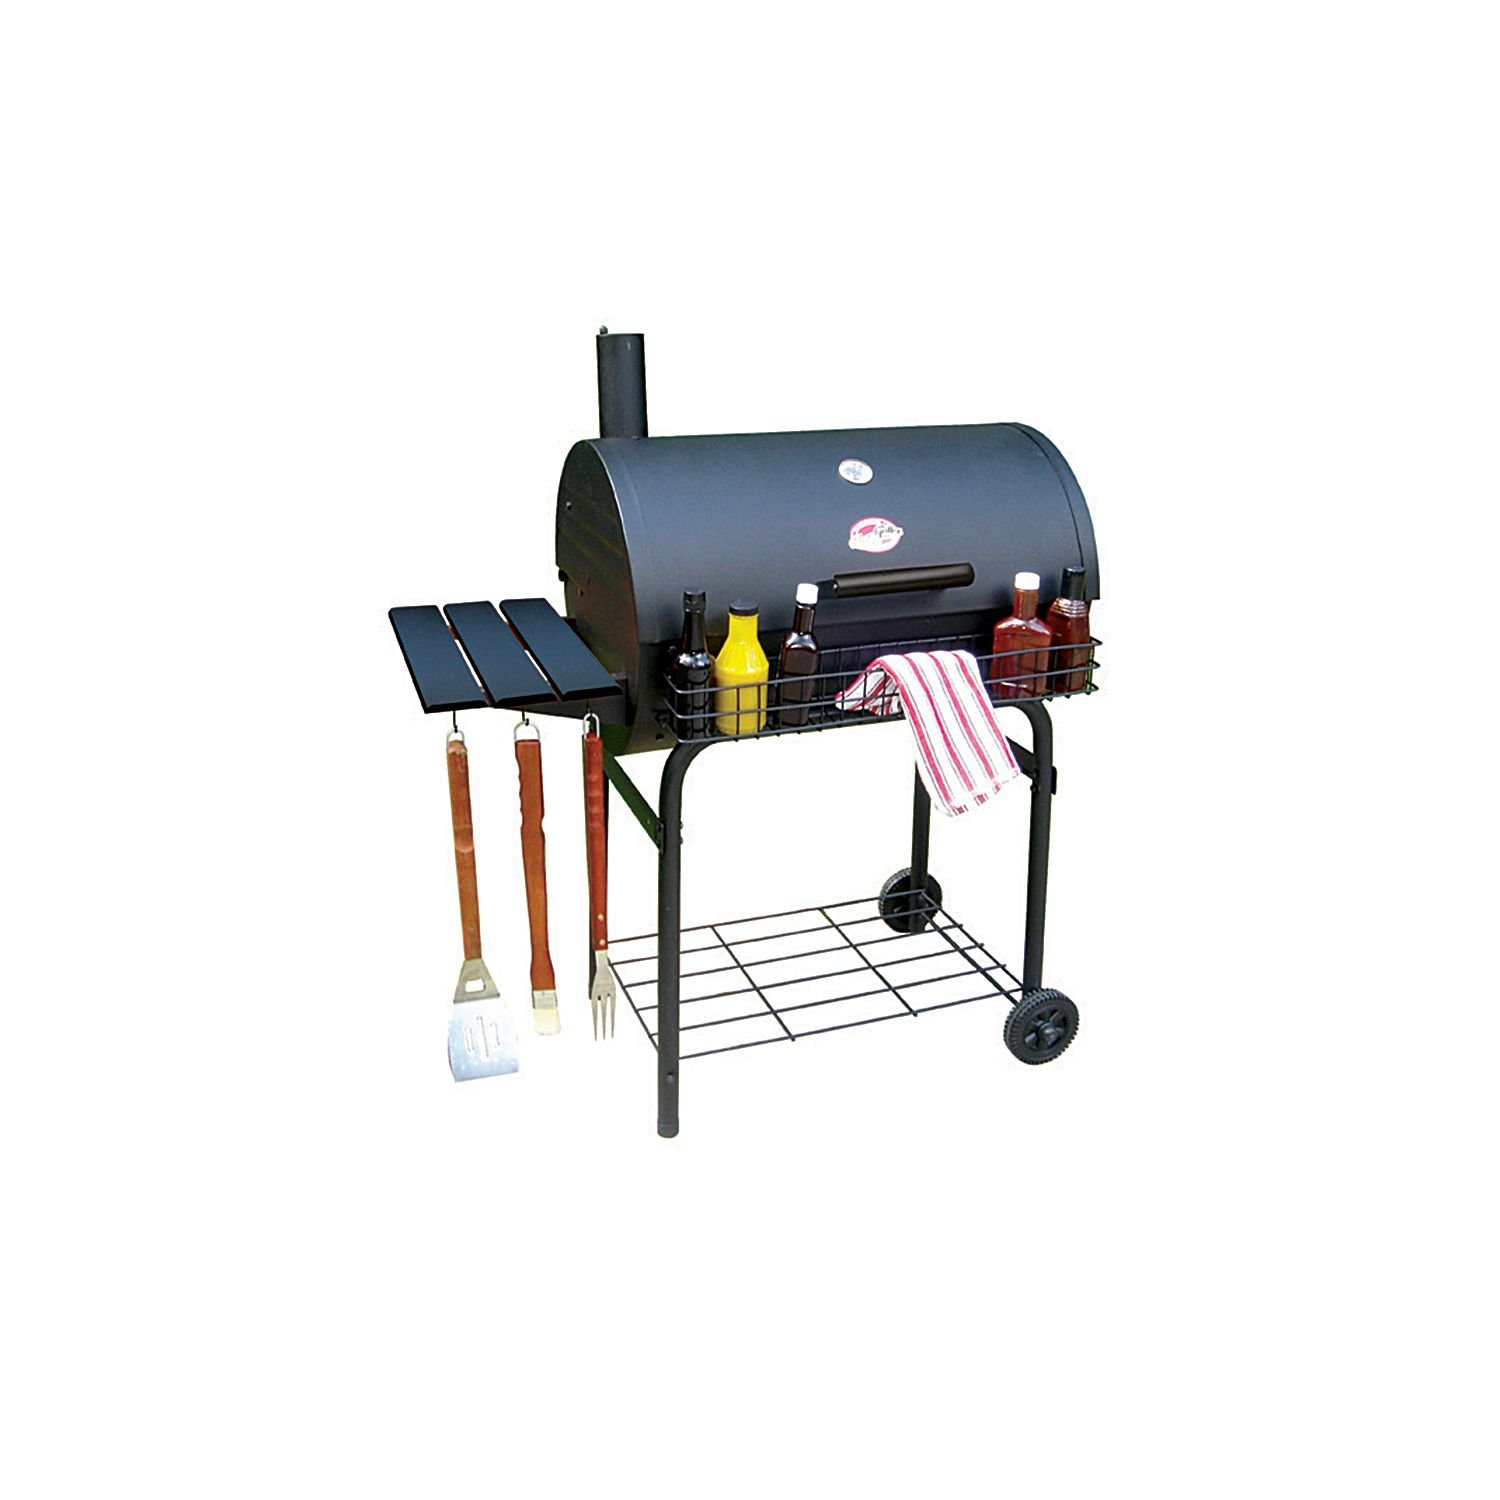 CharGriller Pro Deluxe Grill